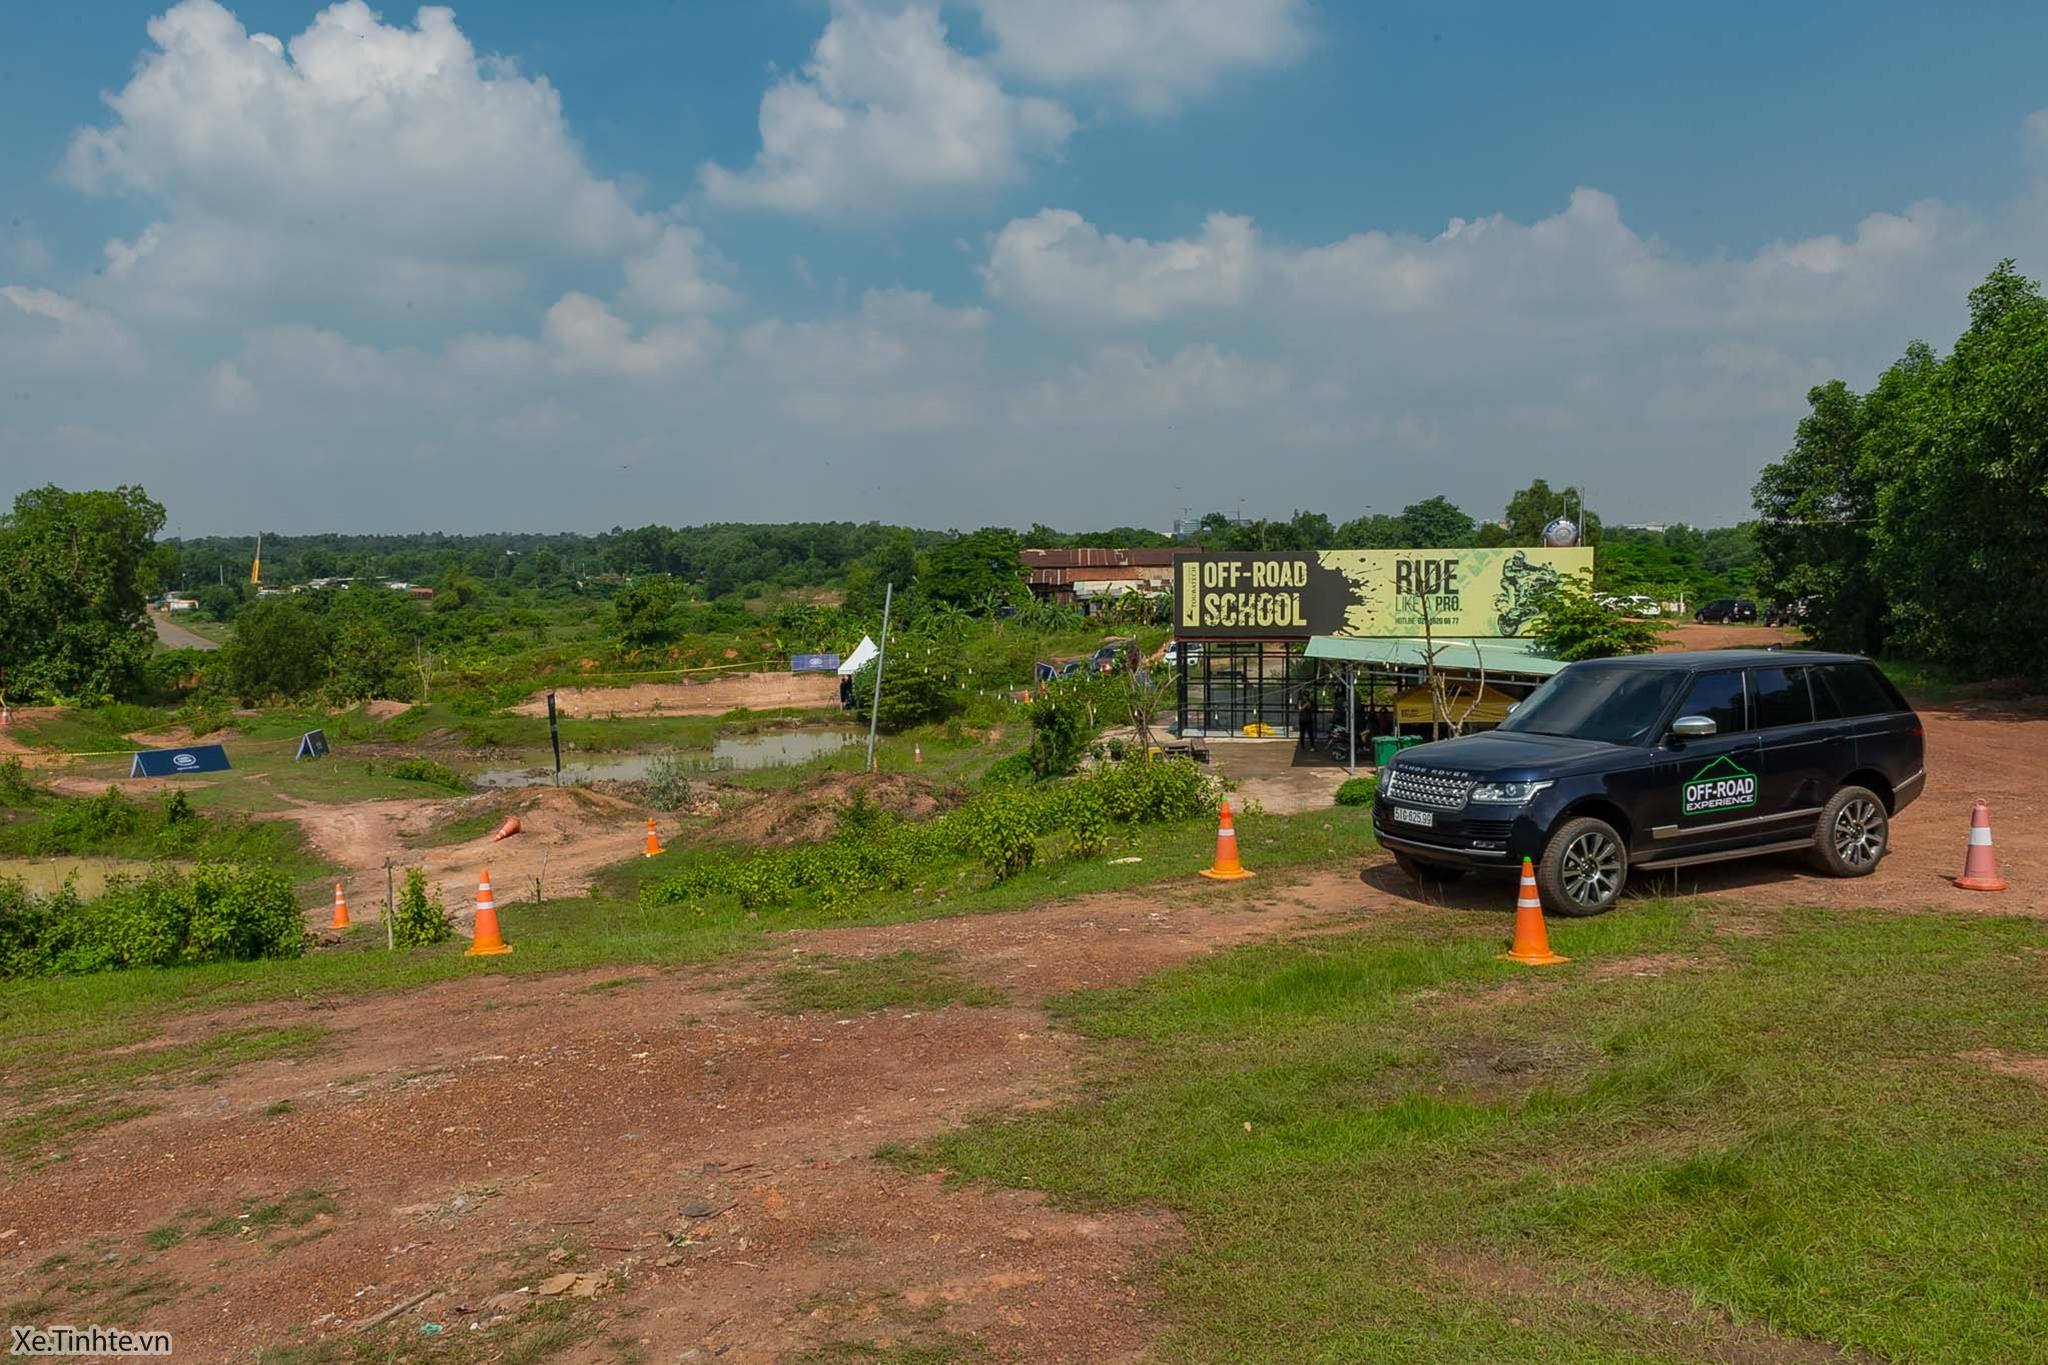 Land_Rover_Off-road_Experience _2018_Xe_Tinhte-002.jpg